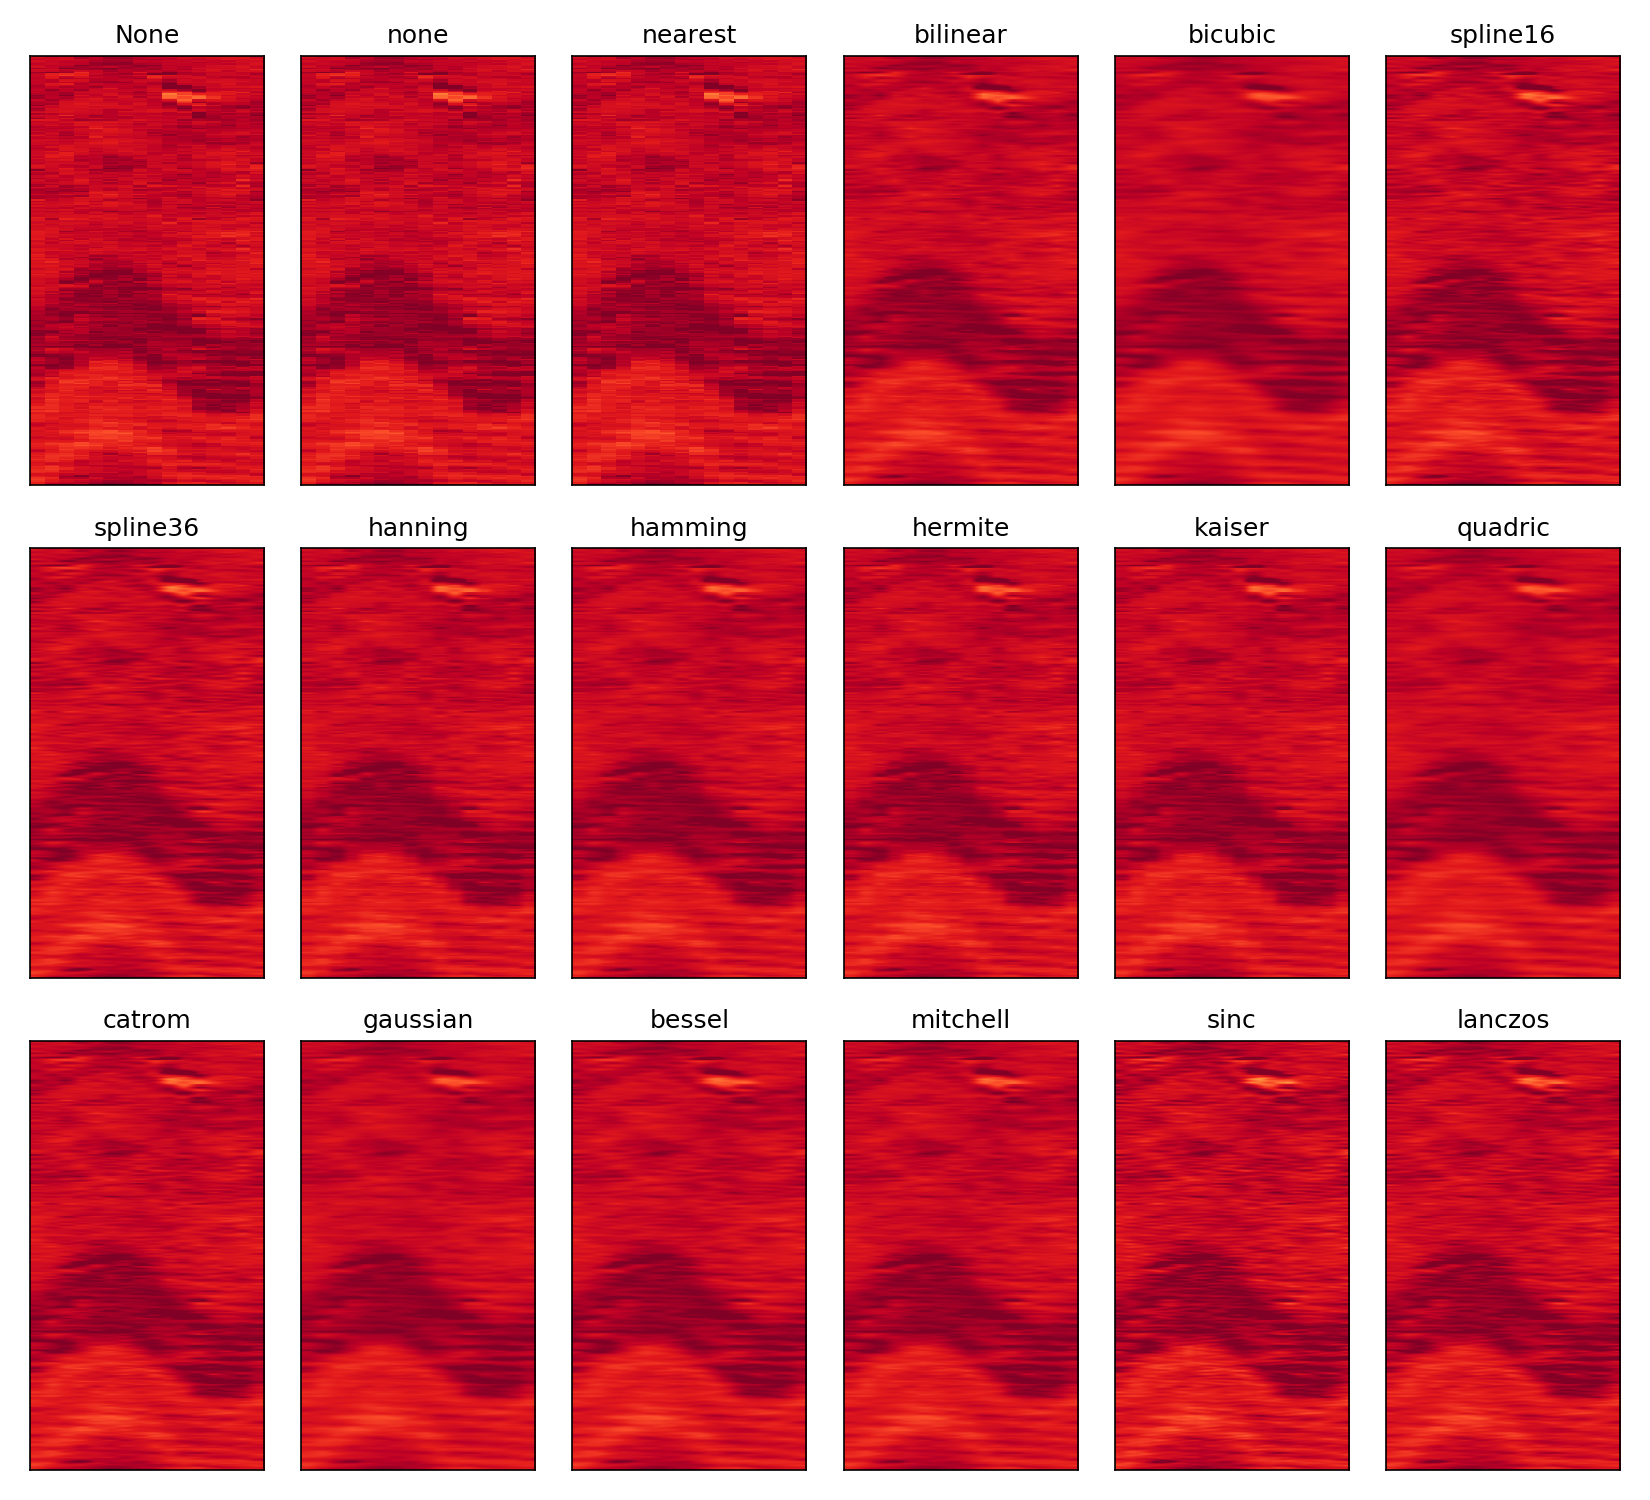 Different types of interpolation of imshow() and azimuthal density image data.